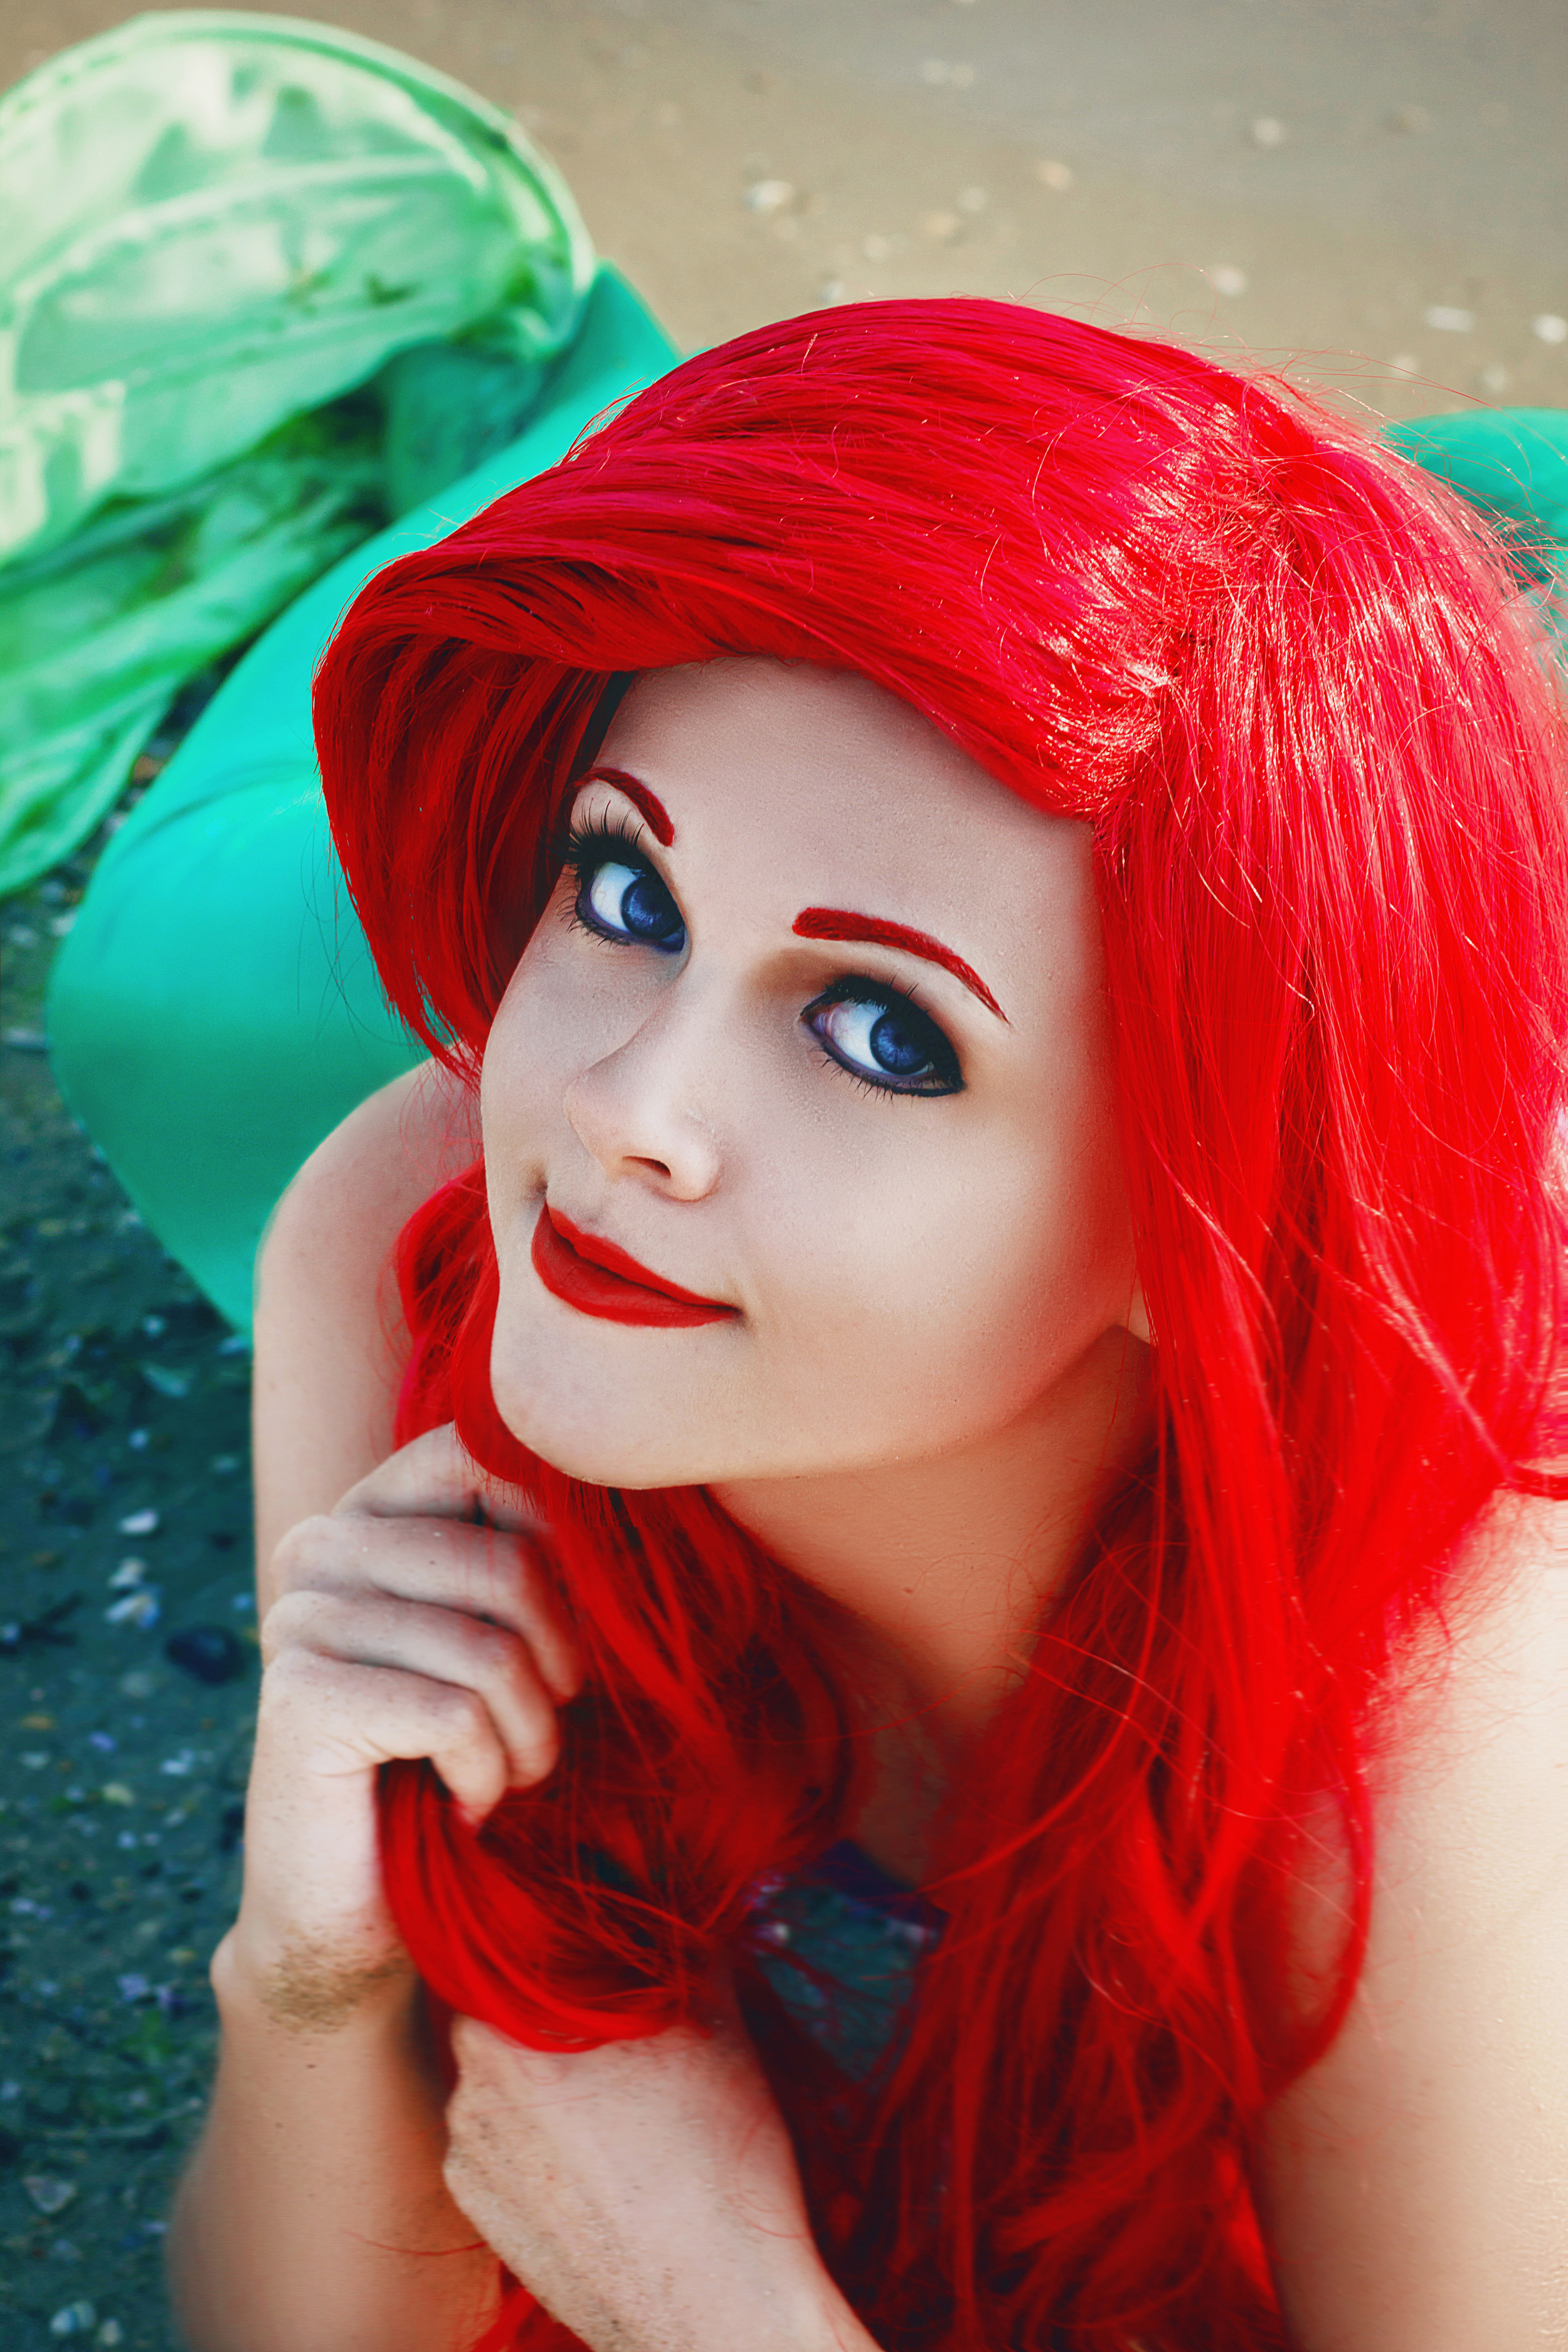 Lavi-A-V  is Ariel, The Little Mermaid